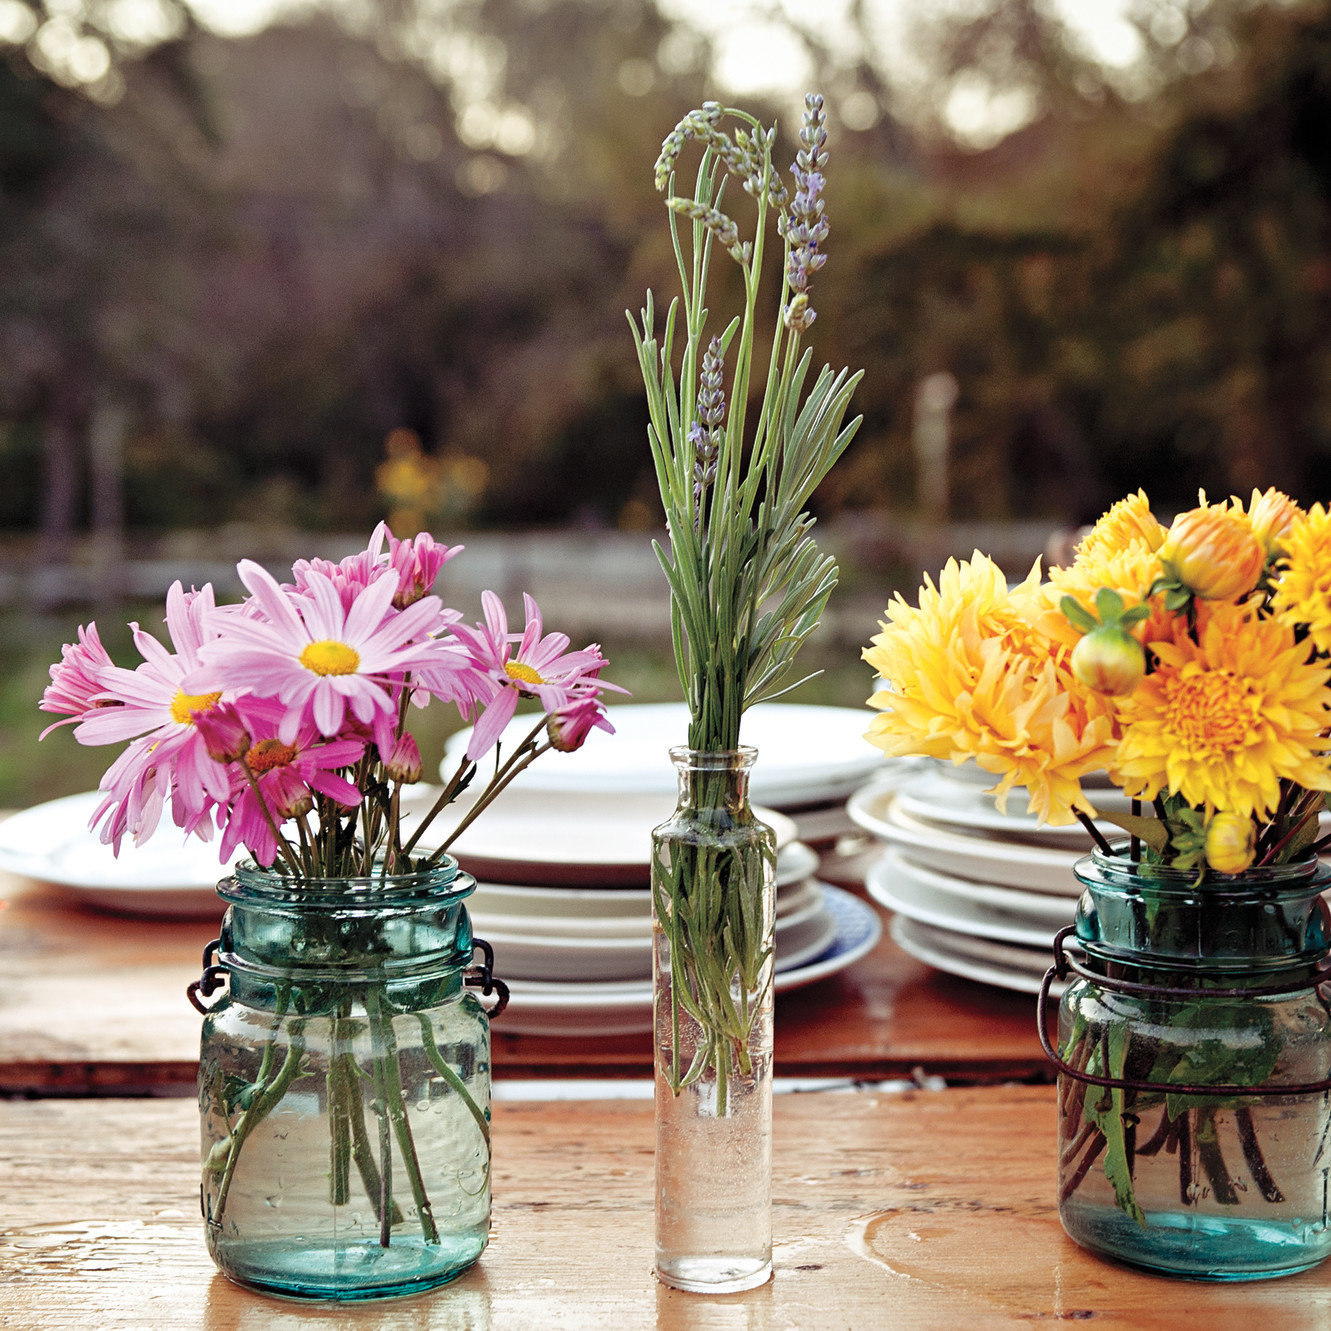 : arranging flowers in a glass vase - startupinsights.org